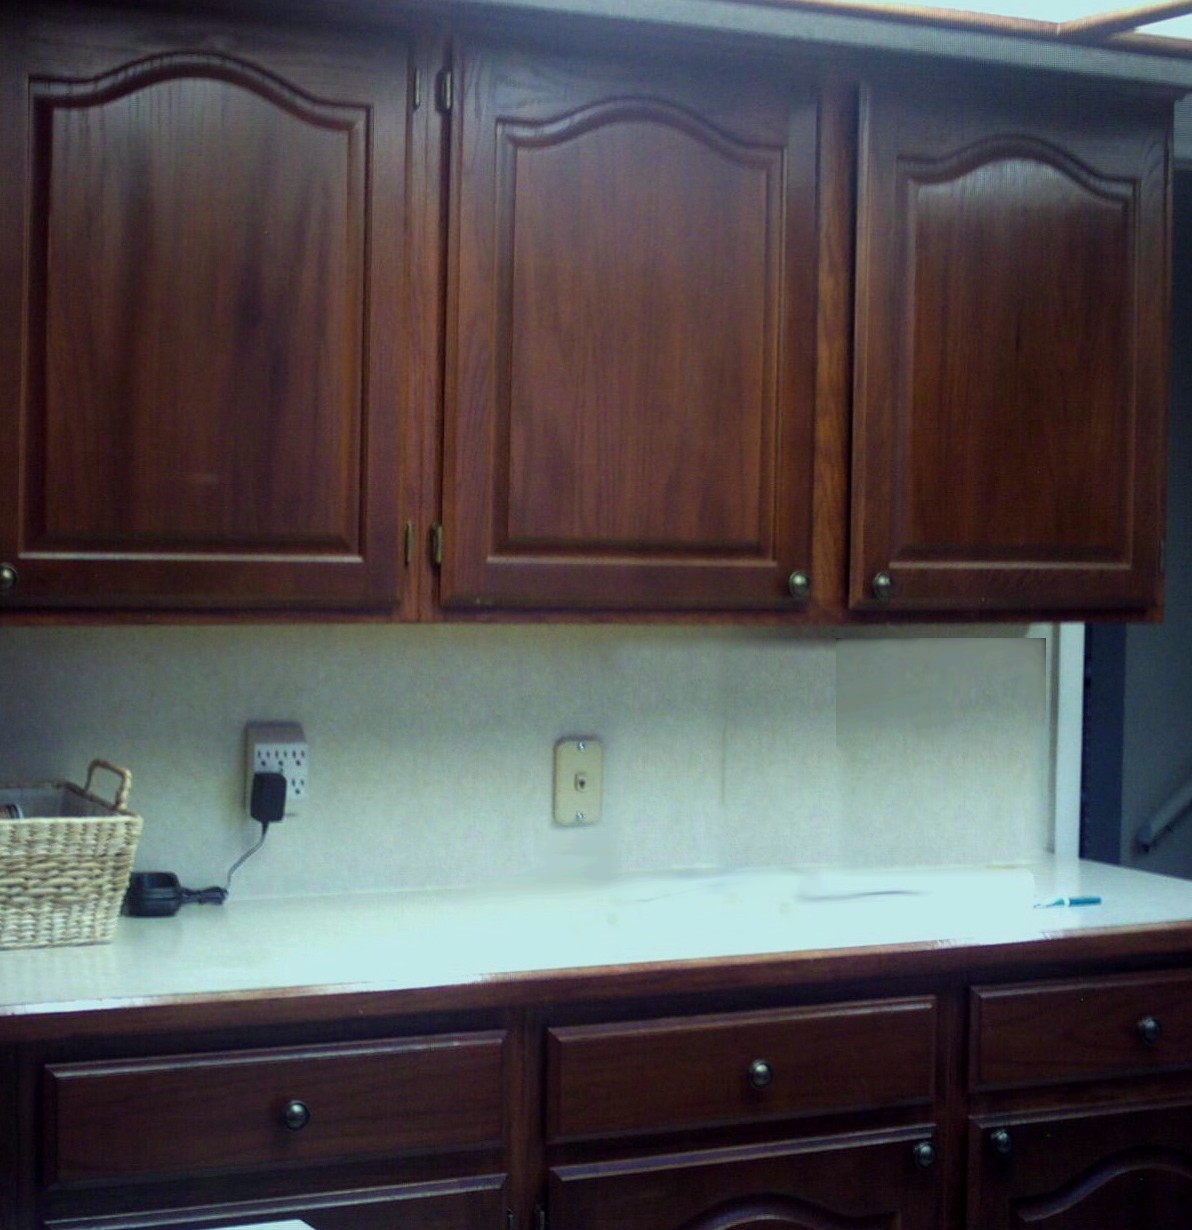 kitchen cabinets and cupboards refinished in cherry wood color